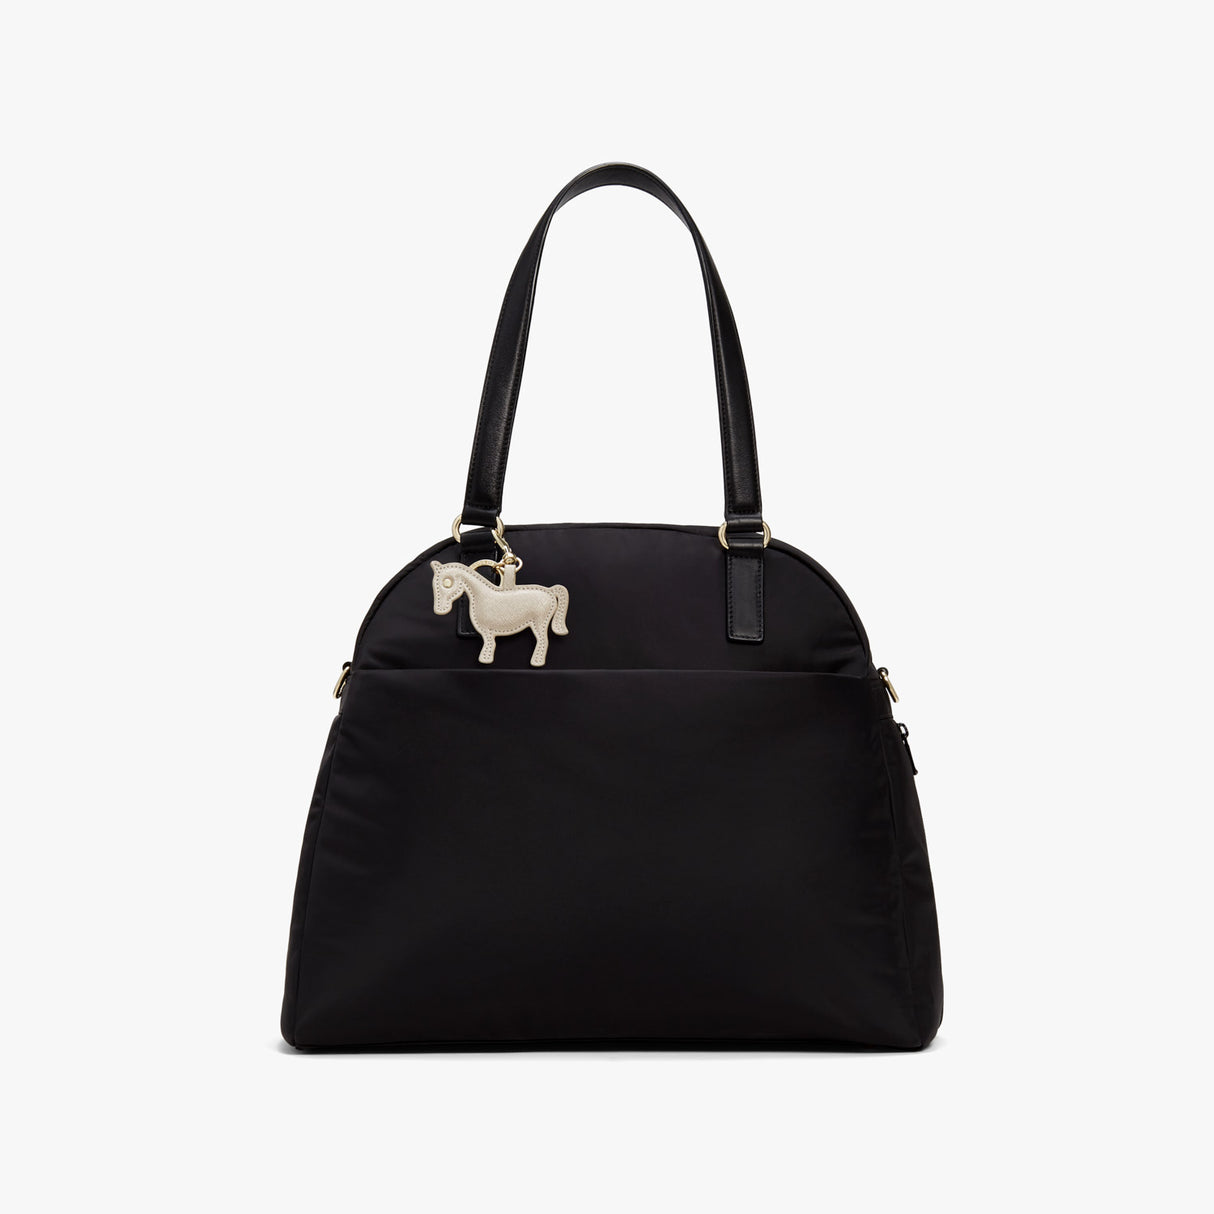 On Bag - Year of the Horse Charm - Saffiano Leather - Champagne - Small Accessory - Lo & Sons